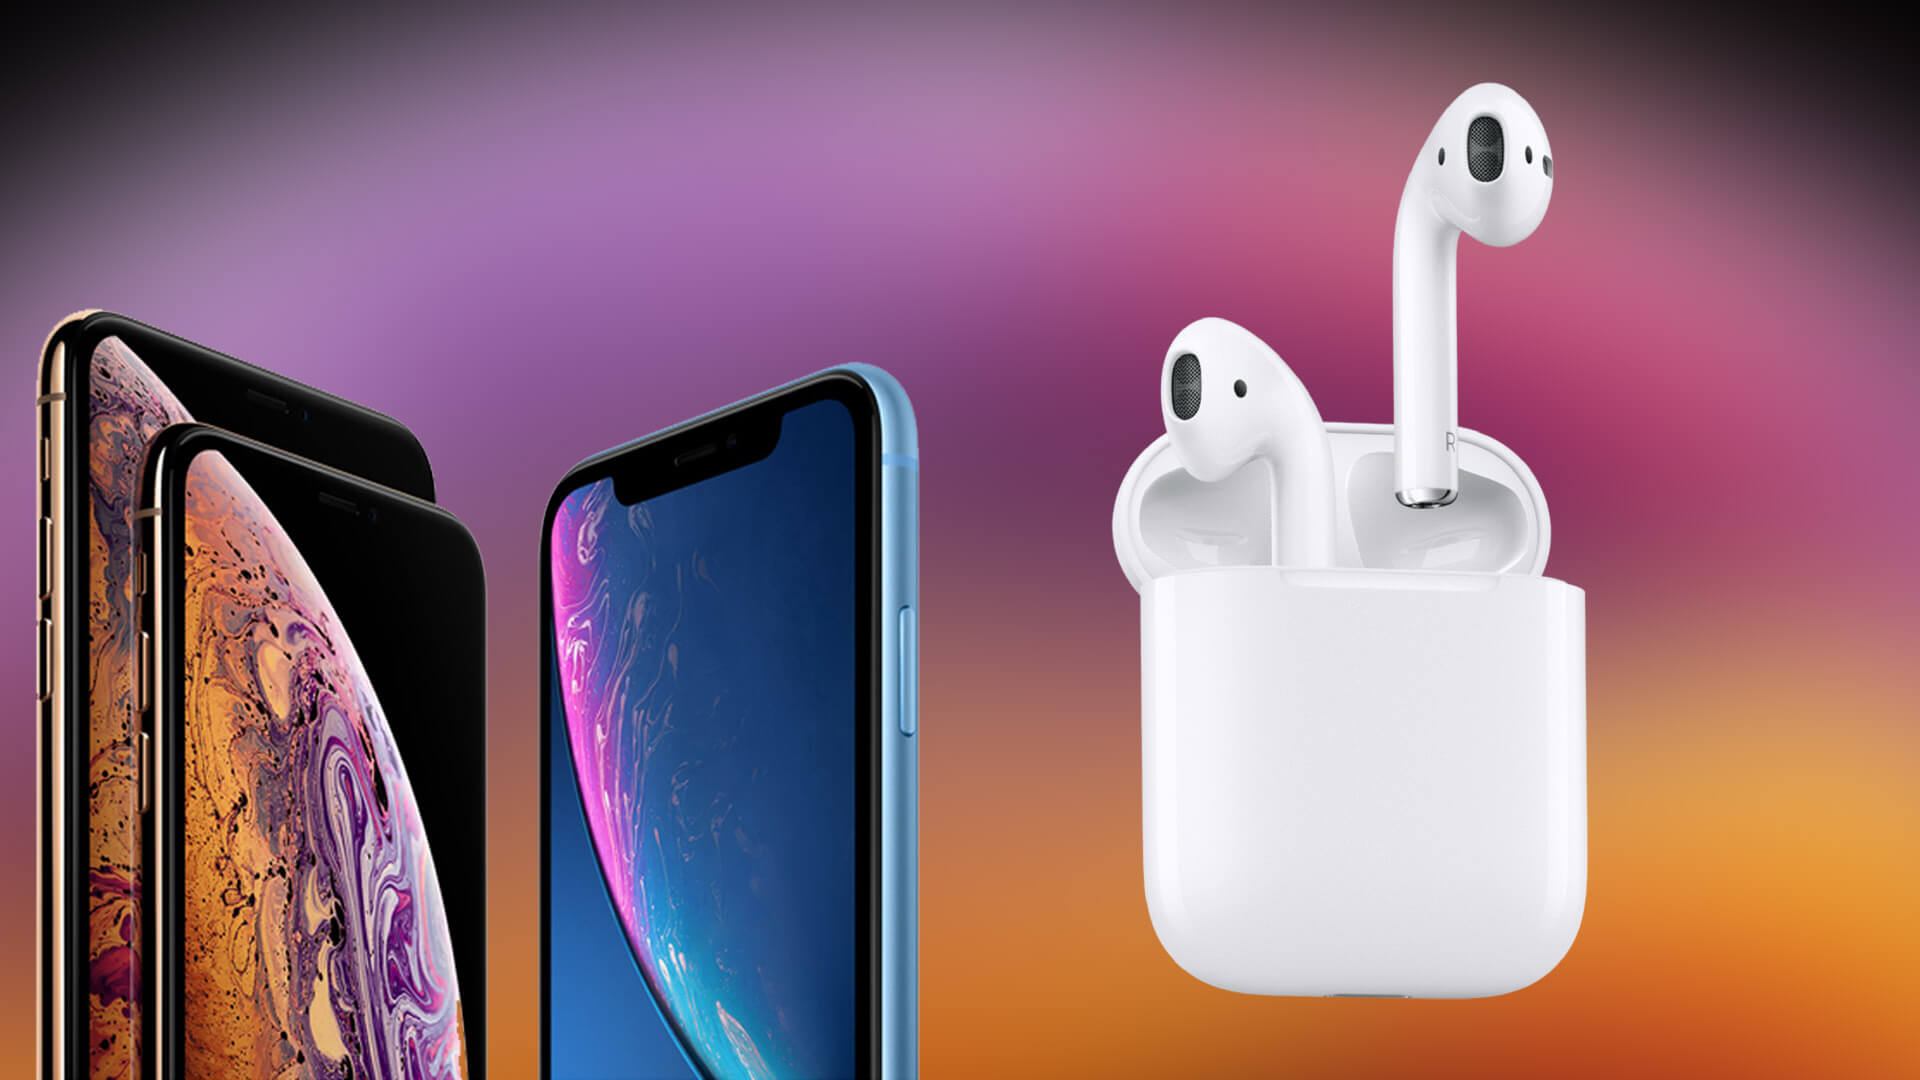 Apple AirPods for iPhone Xs Max, Xs and iPhone XR